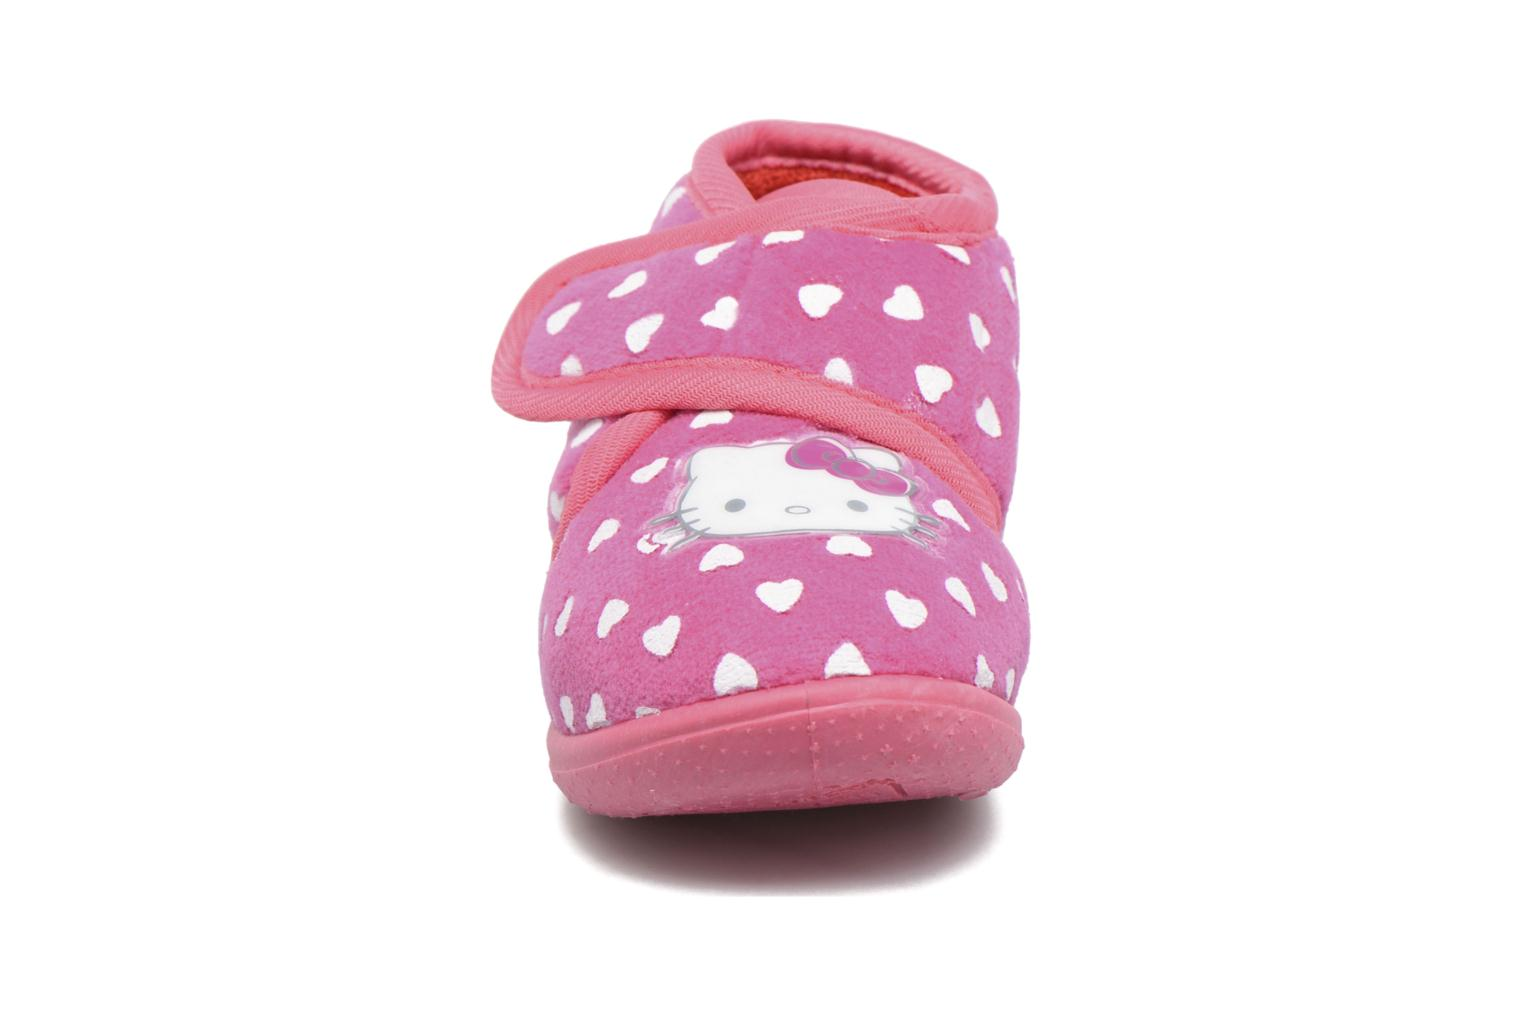 Chaussons Hello Kitty Hk Lalie Rose vue portées chaussures